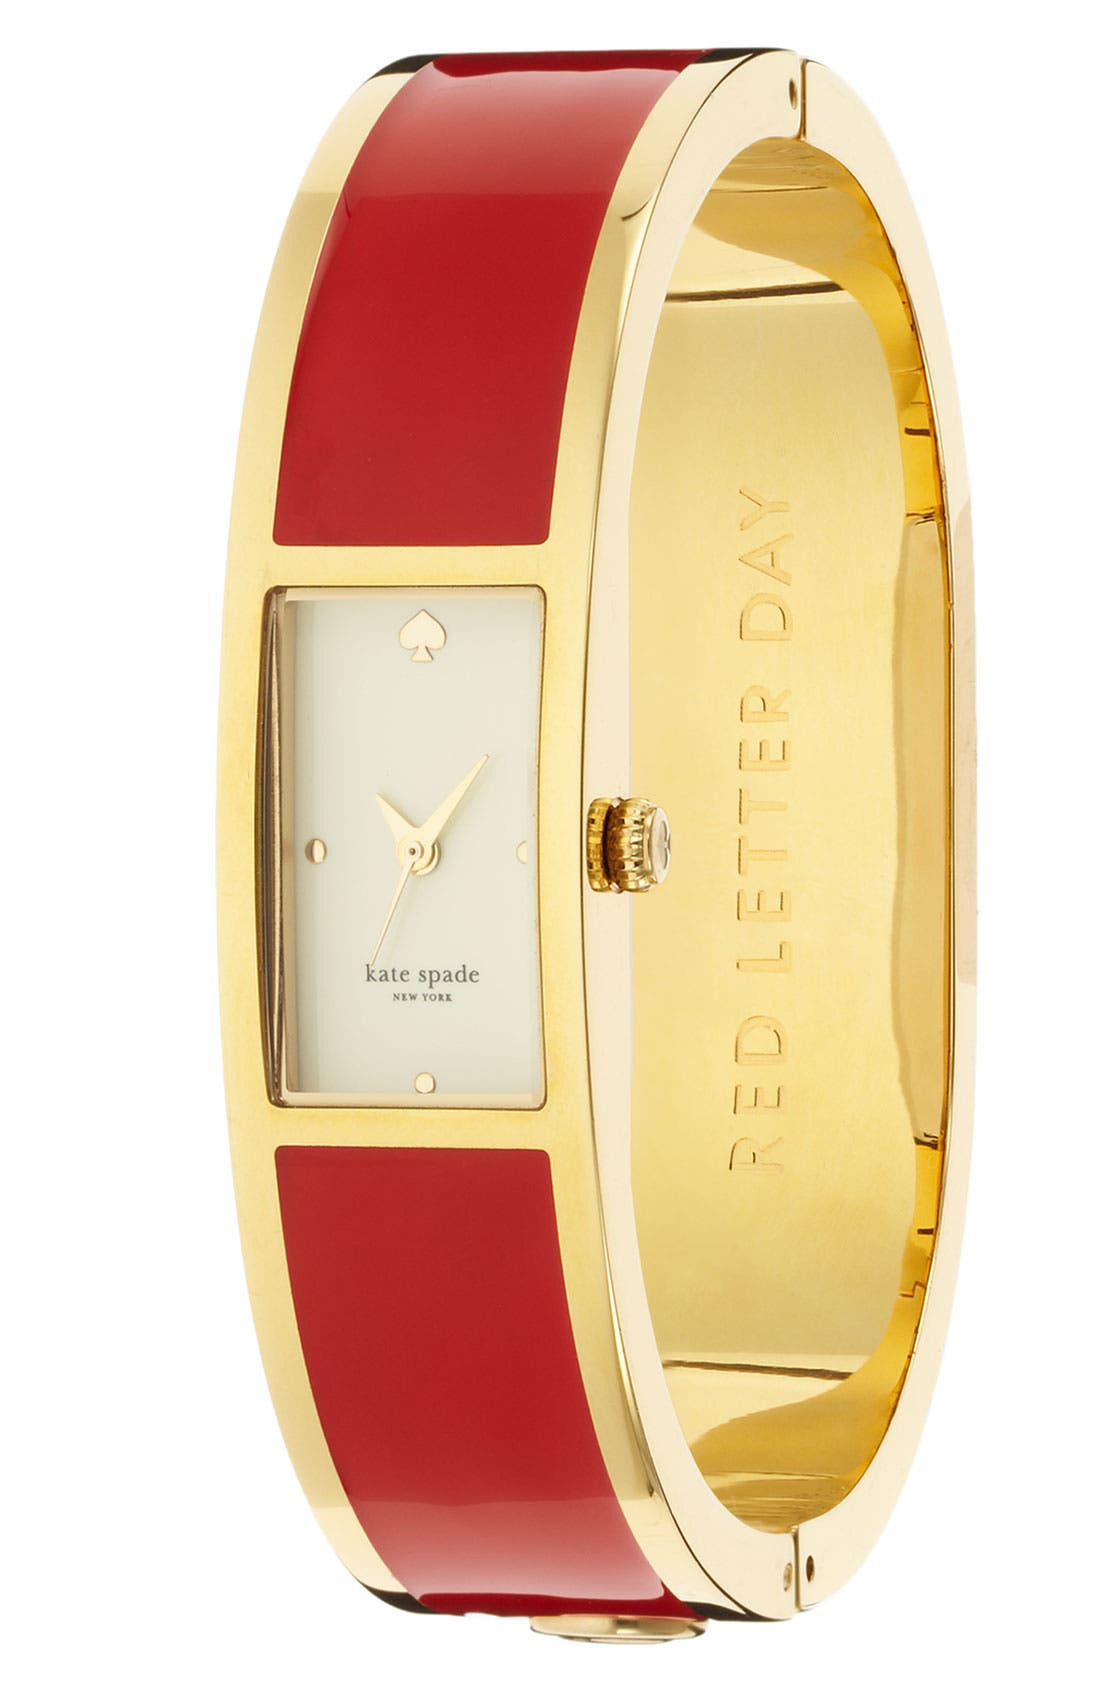 Alternate Image 1 Selected - kate spade new york 'carousel' bangle watch, 15mm x 16mm